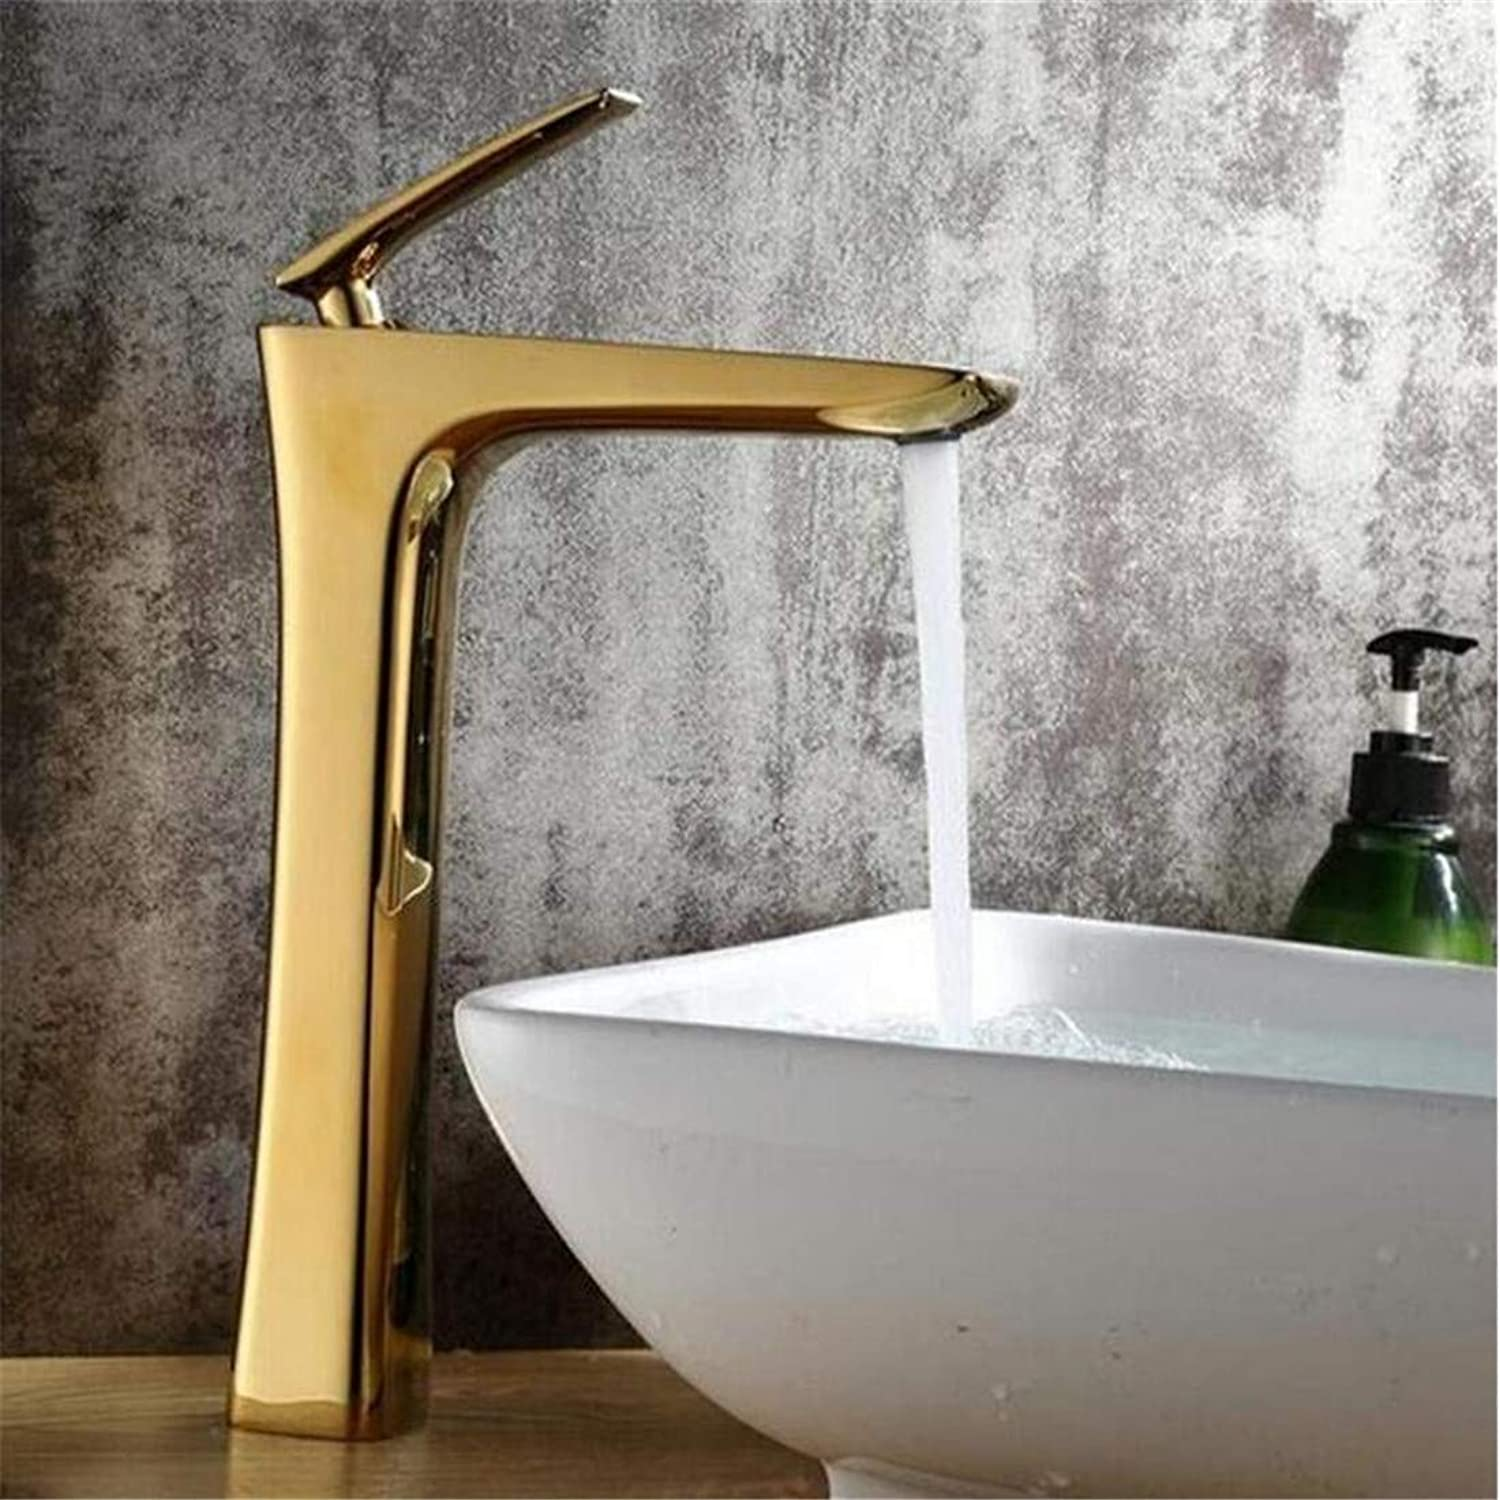 High Quality Kitchen Brass Stainless Steelbathroom Single Handle Hot and Cold Water Mix Taps Bathroom Washbasin Tap